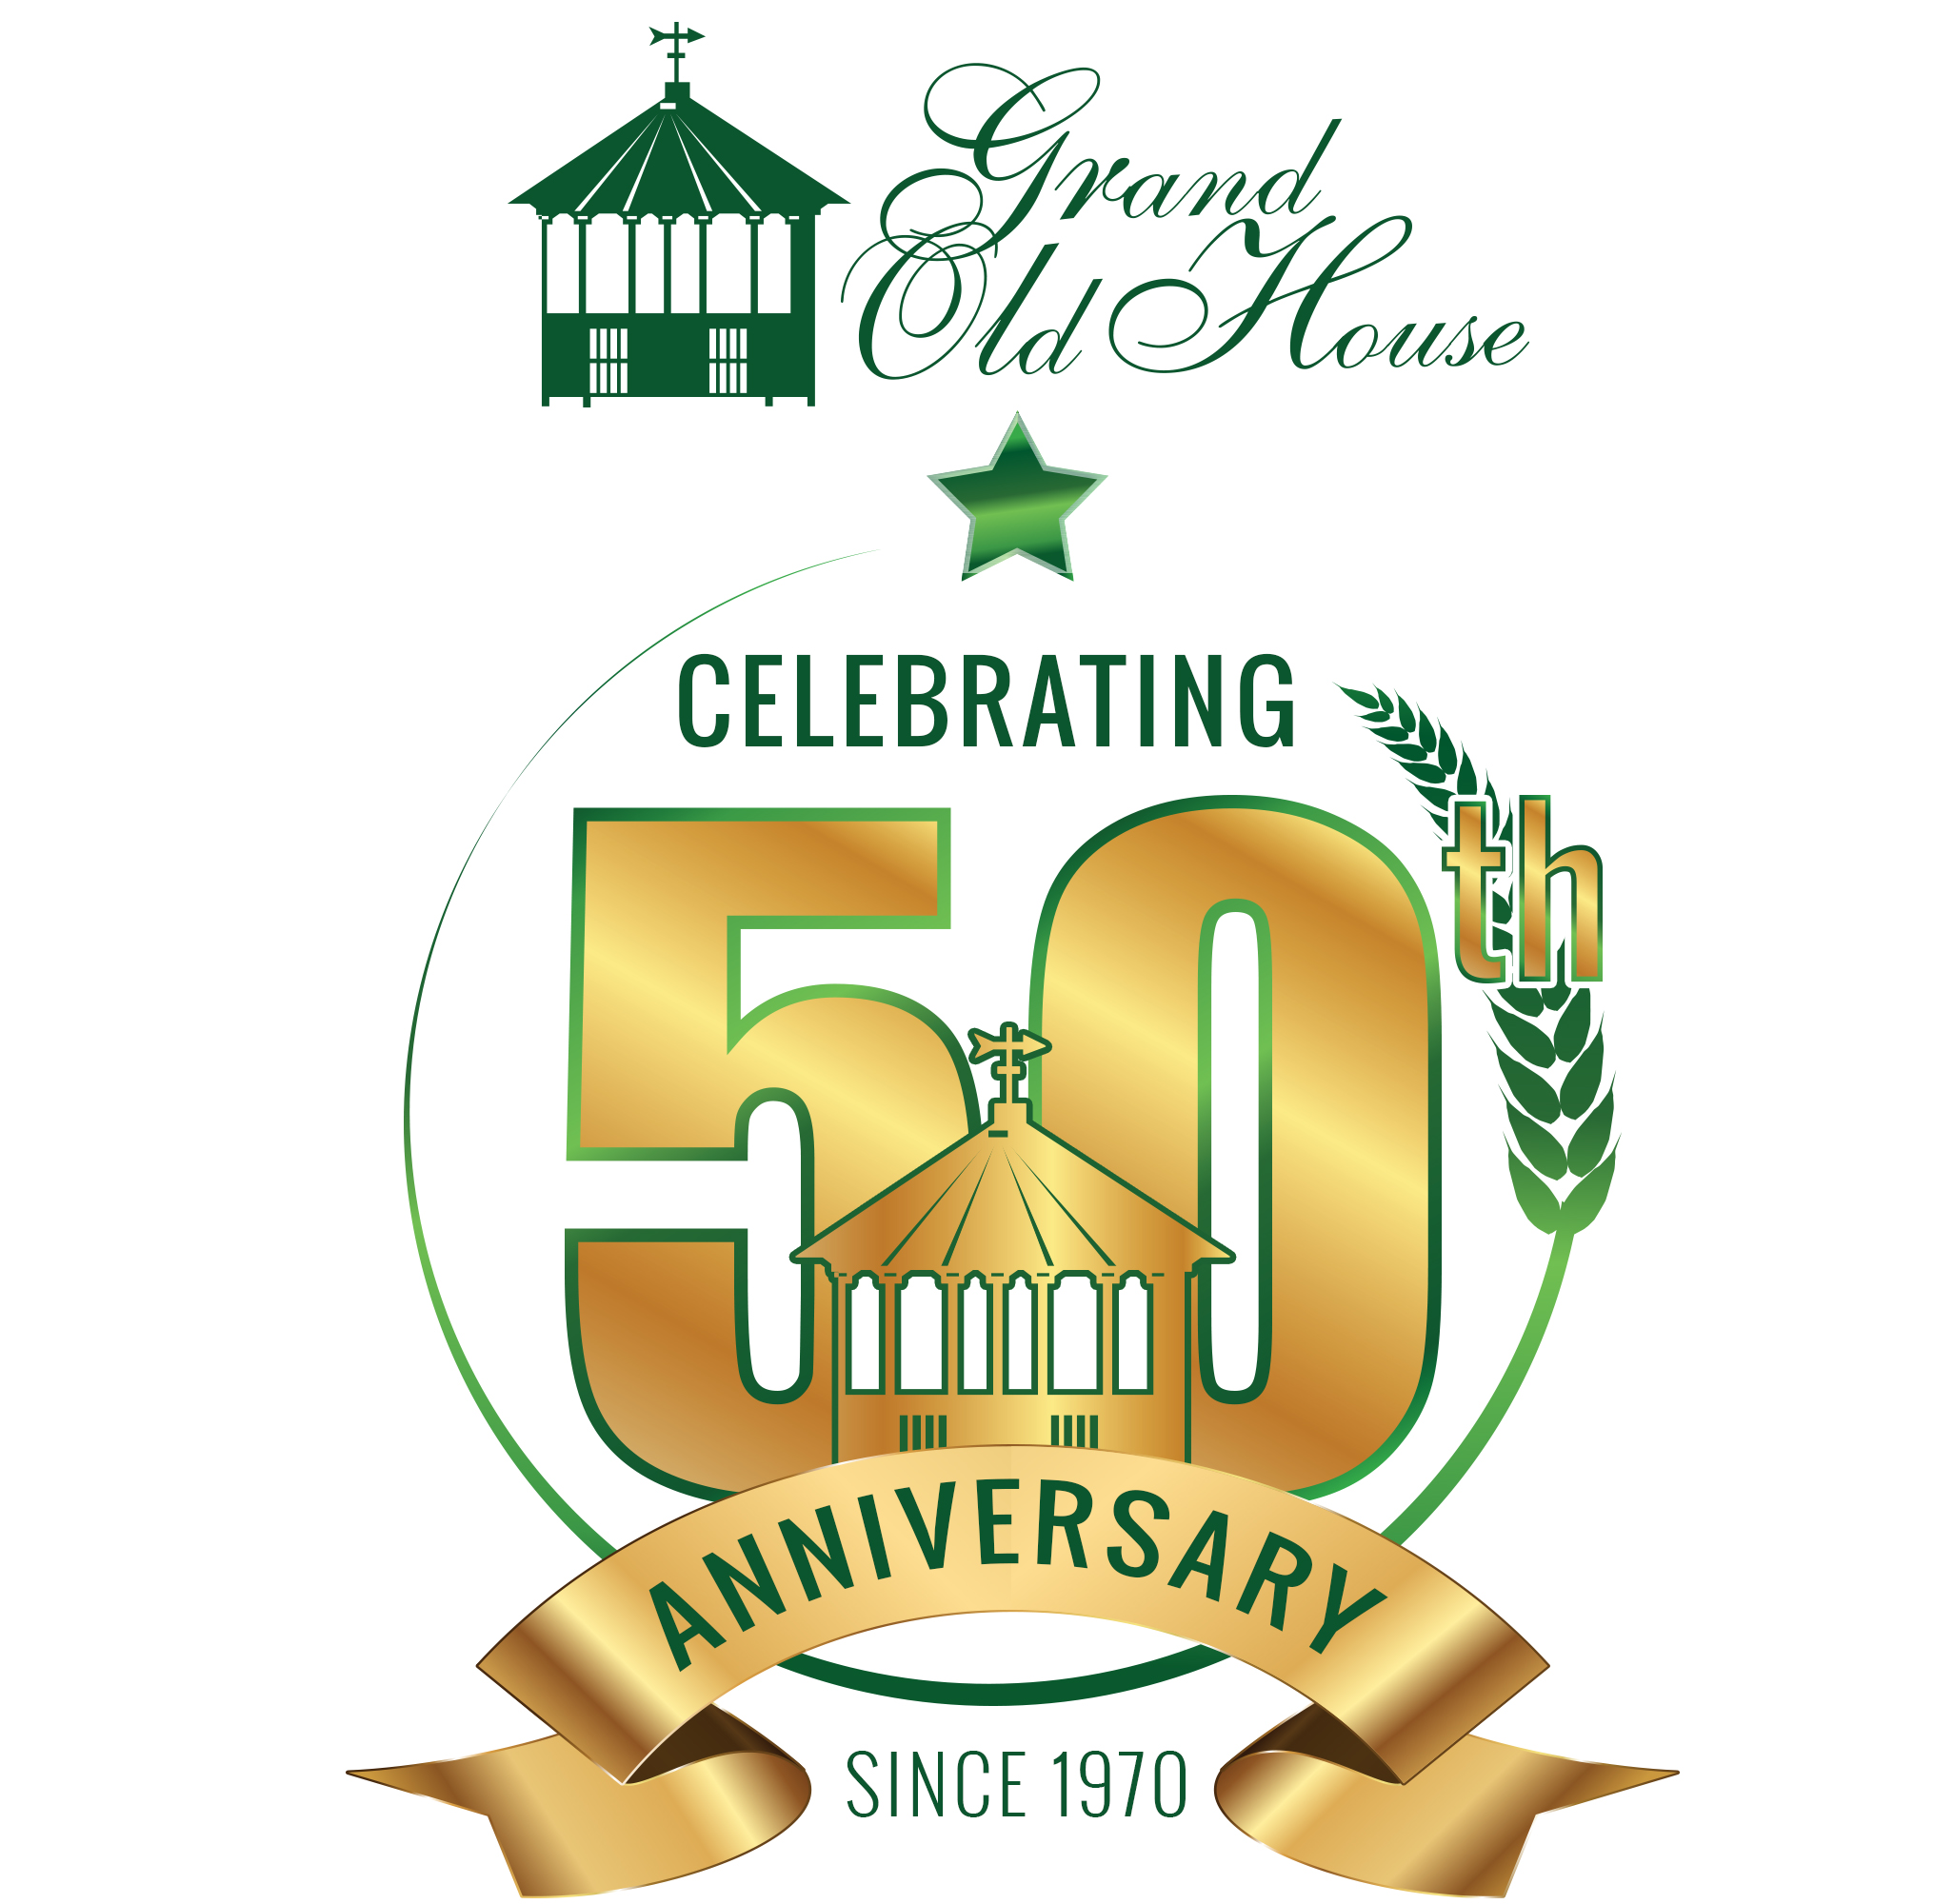 Celebrating 50th Anniversary of Grand Old House